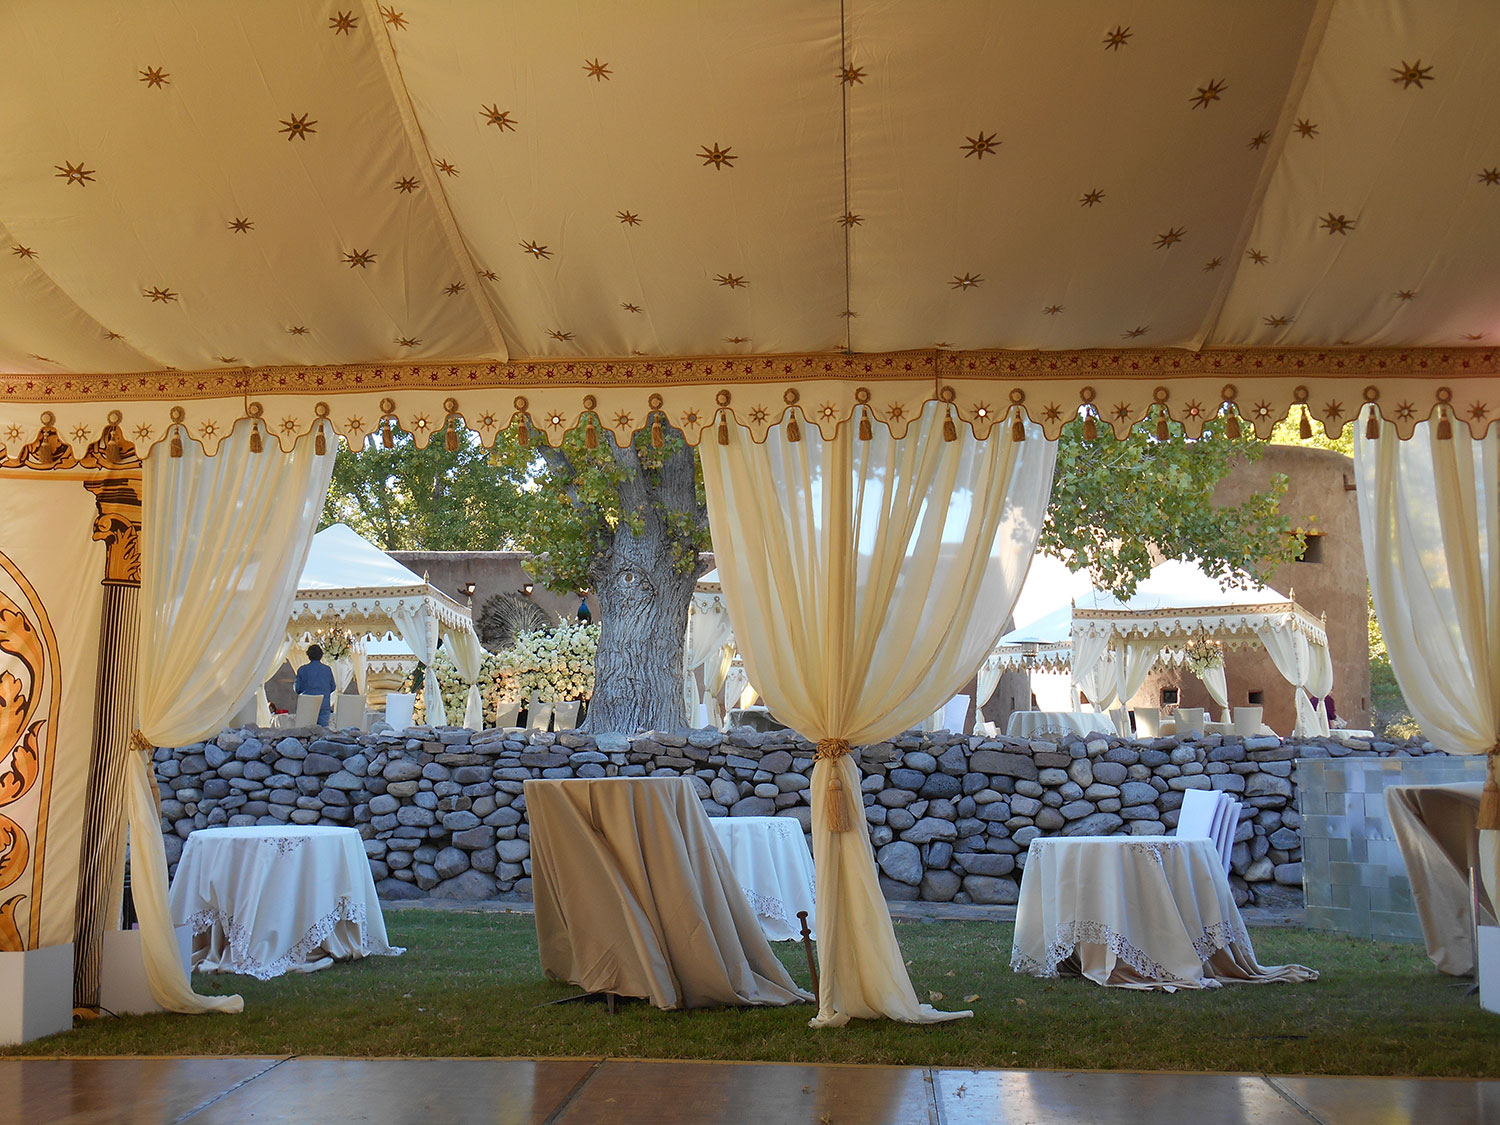 raj-tents-old-hollywood-theme-honeyglow-goldstar-tent.jpg